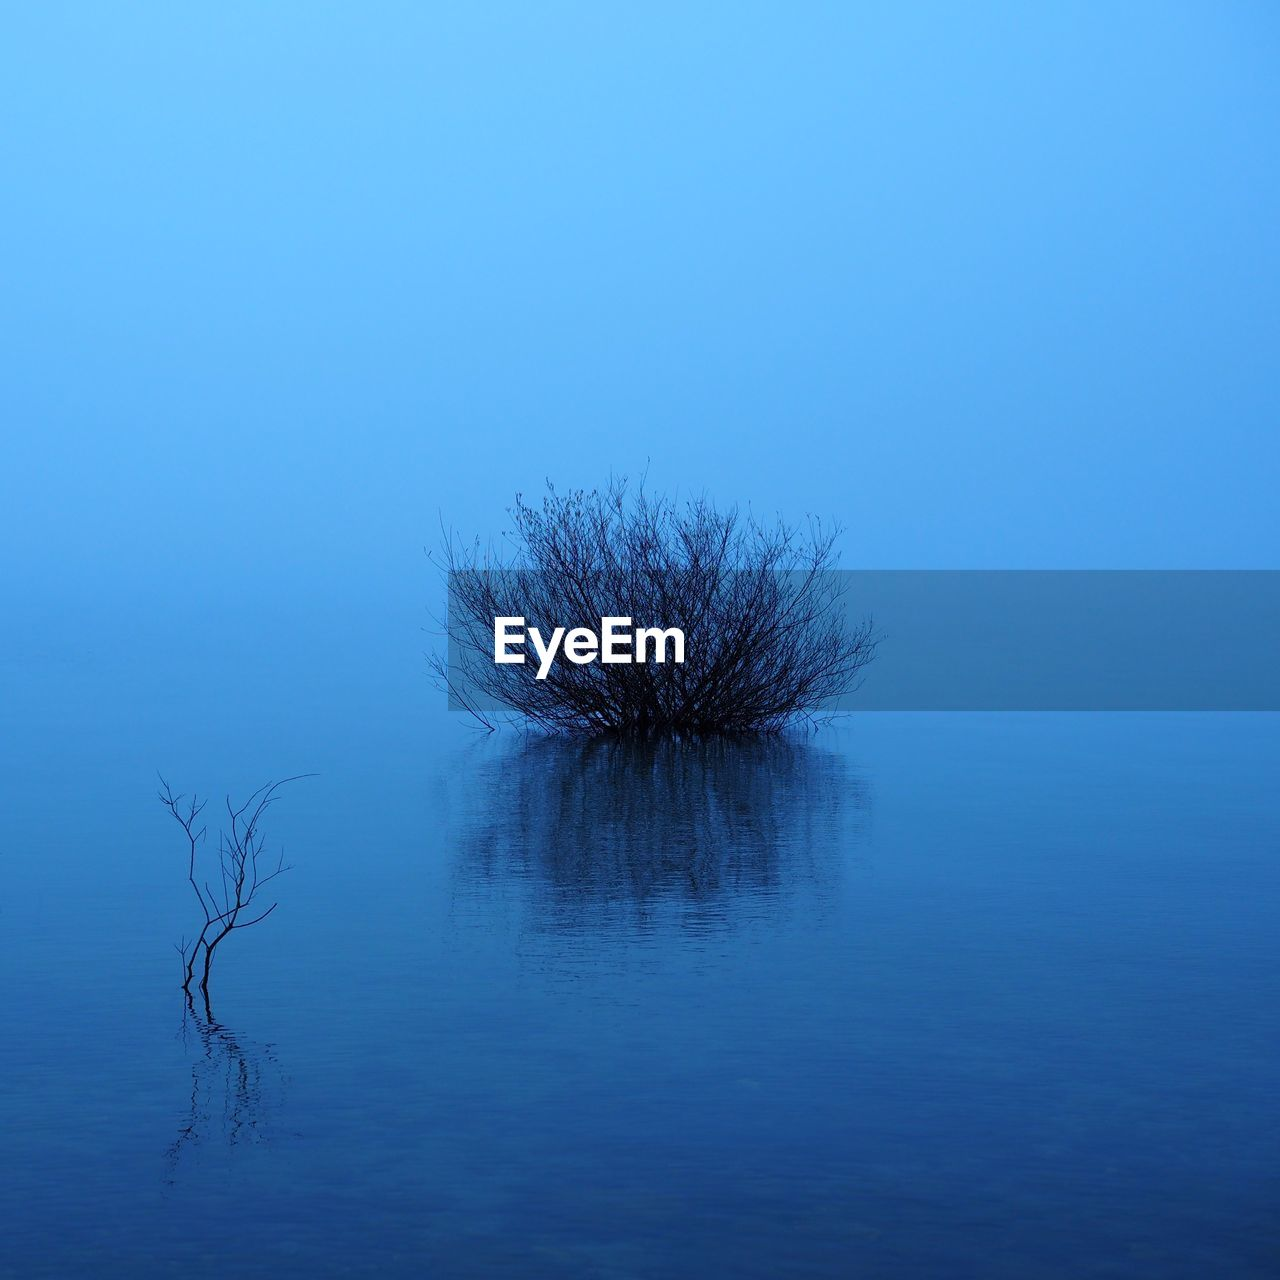 BARE TREE BY WATER AGAINST CLEAR SKY